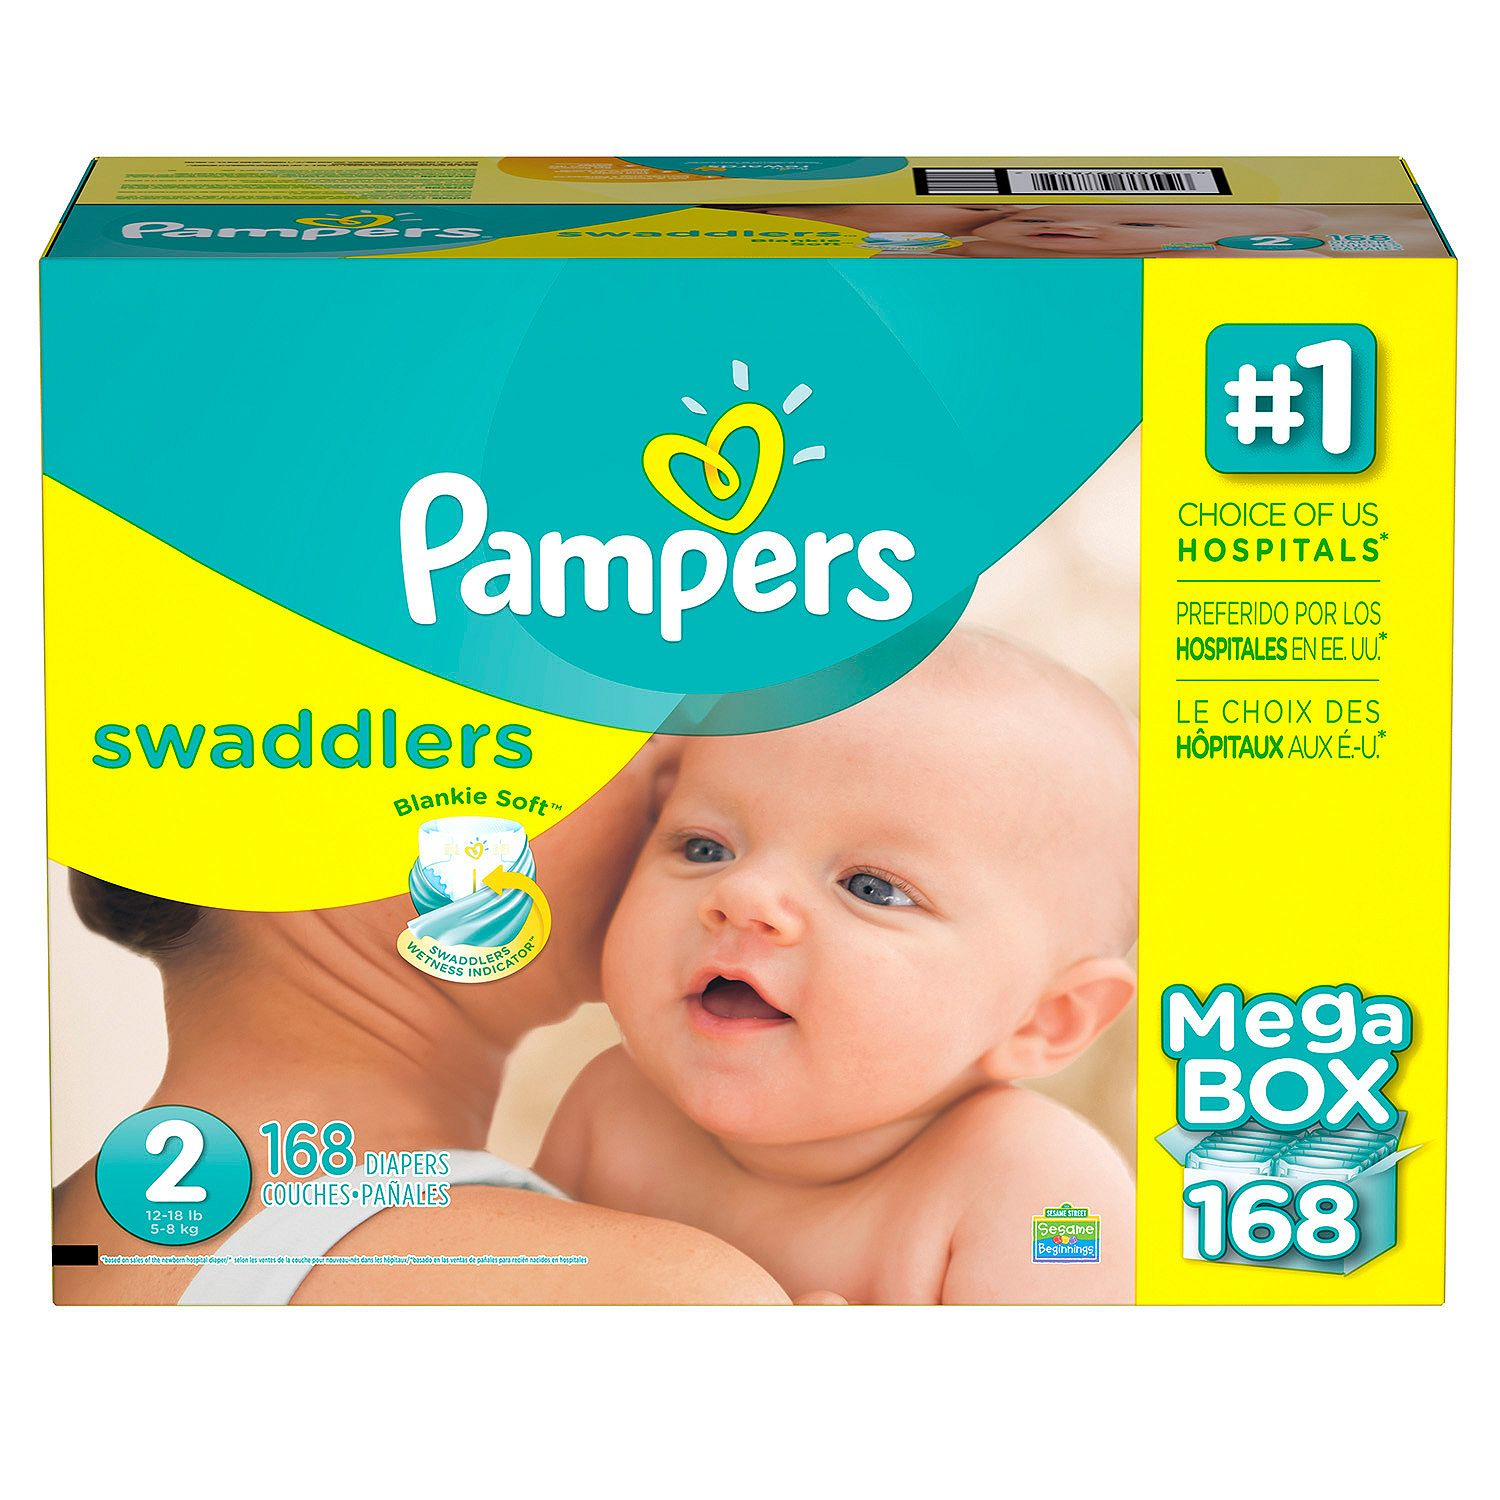 Pampers' Swaddlers Diapers Size 2 - 168 ct. ( Weight 12- 18 lb.) - Bulk Qty, Free Shipping - Comfortable, Soft, No leaking & Good nite Diapers